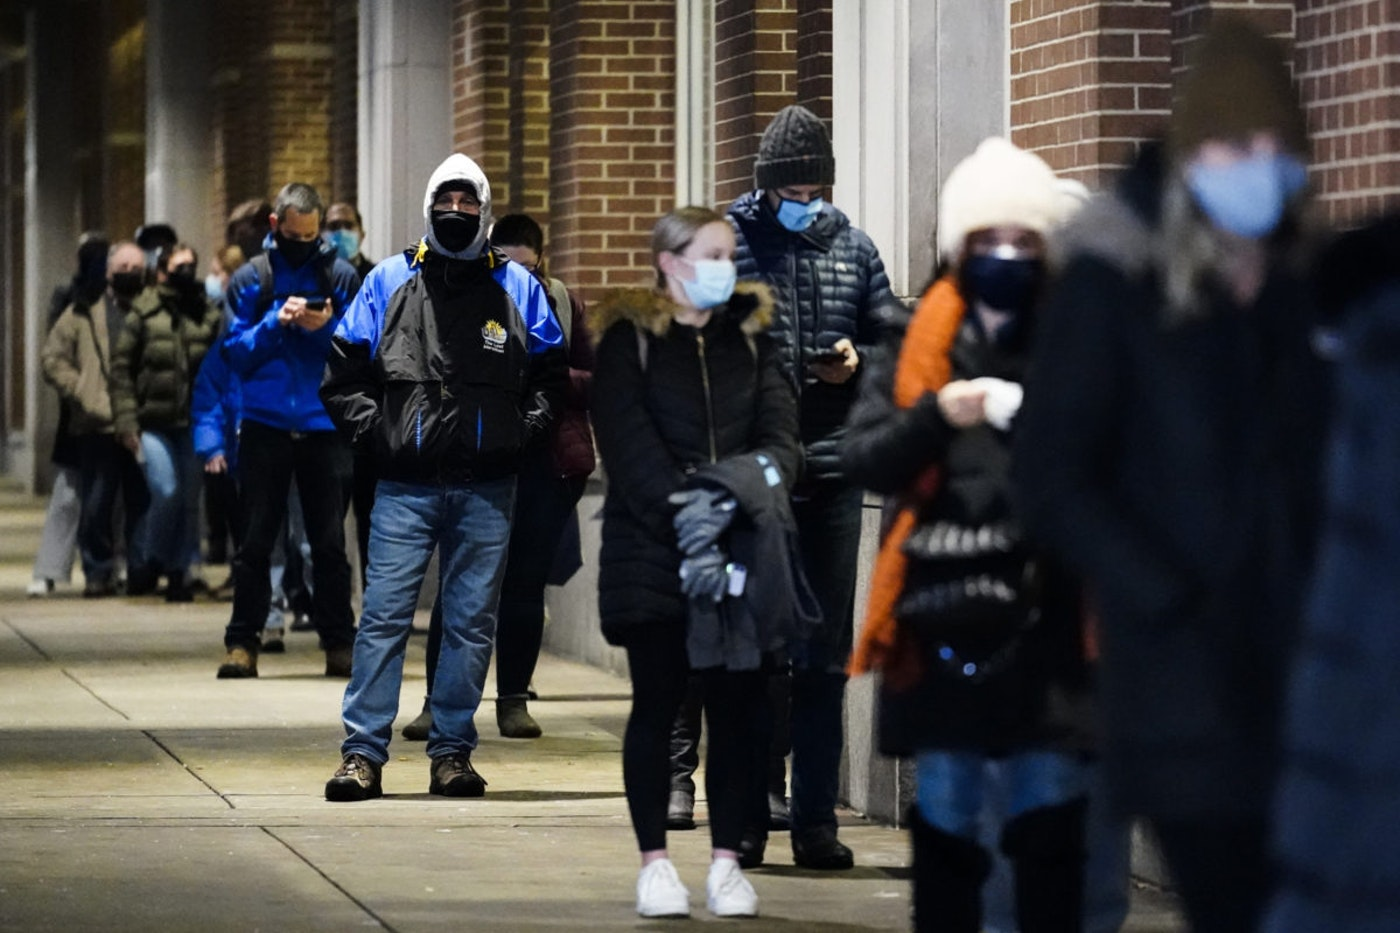 People wait in line at a COVID-19 vaccination site at the Pennsylvania Convention Center in Philadelphia, Wednesday, Feb. 3, 2021. The clinic opened to help provide second doses of COVID-19 vaccinations. (AP Photo/Matt Rourke)